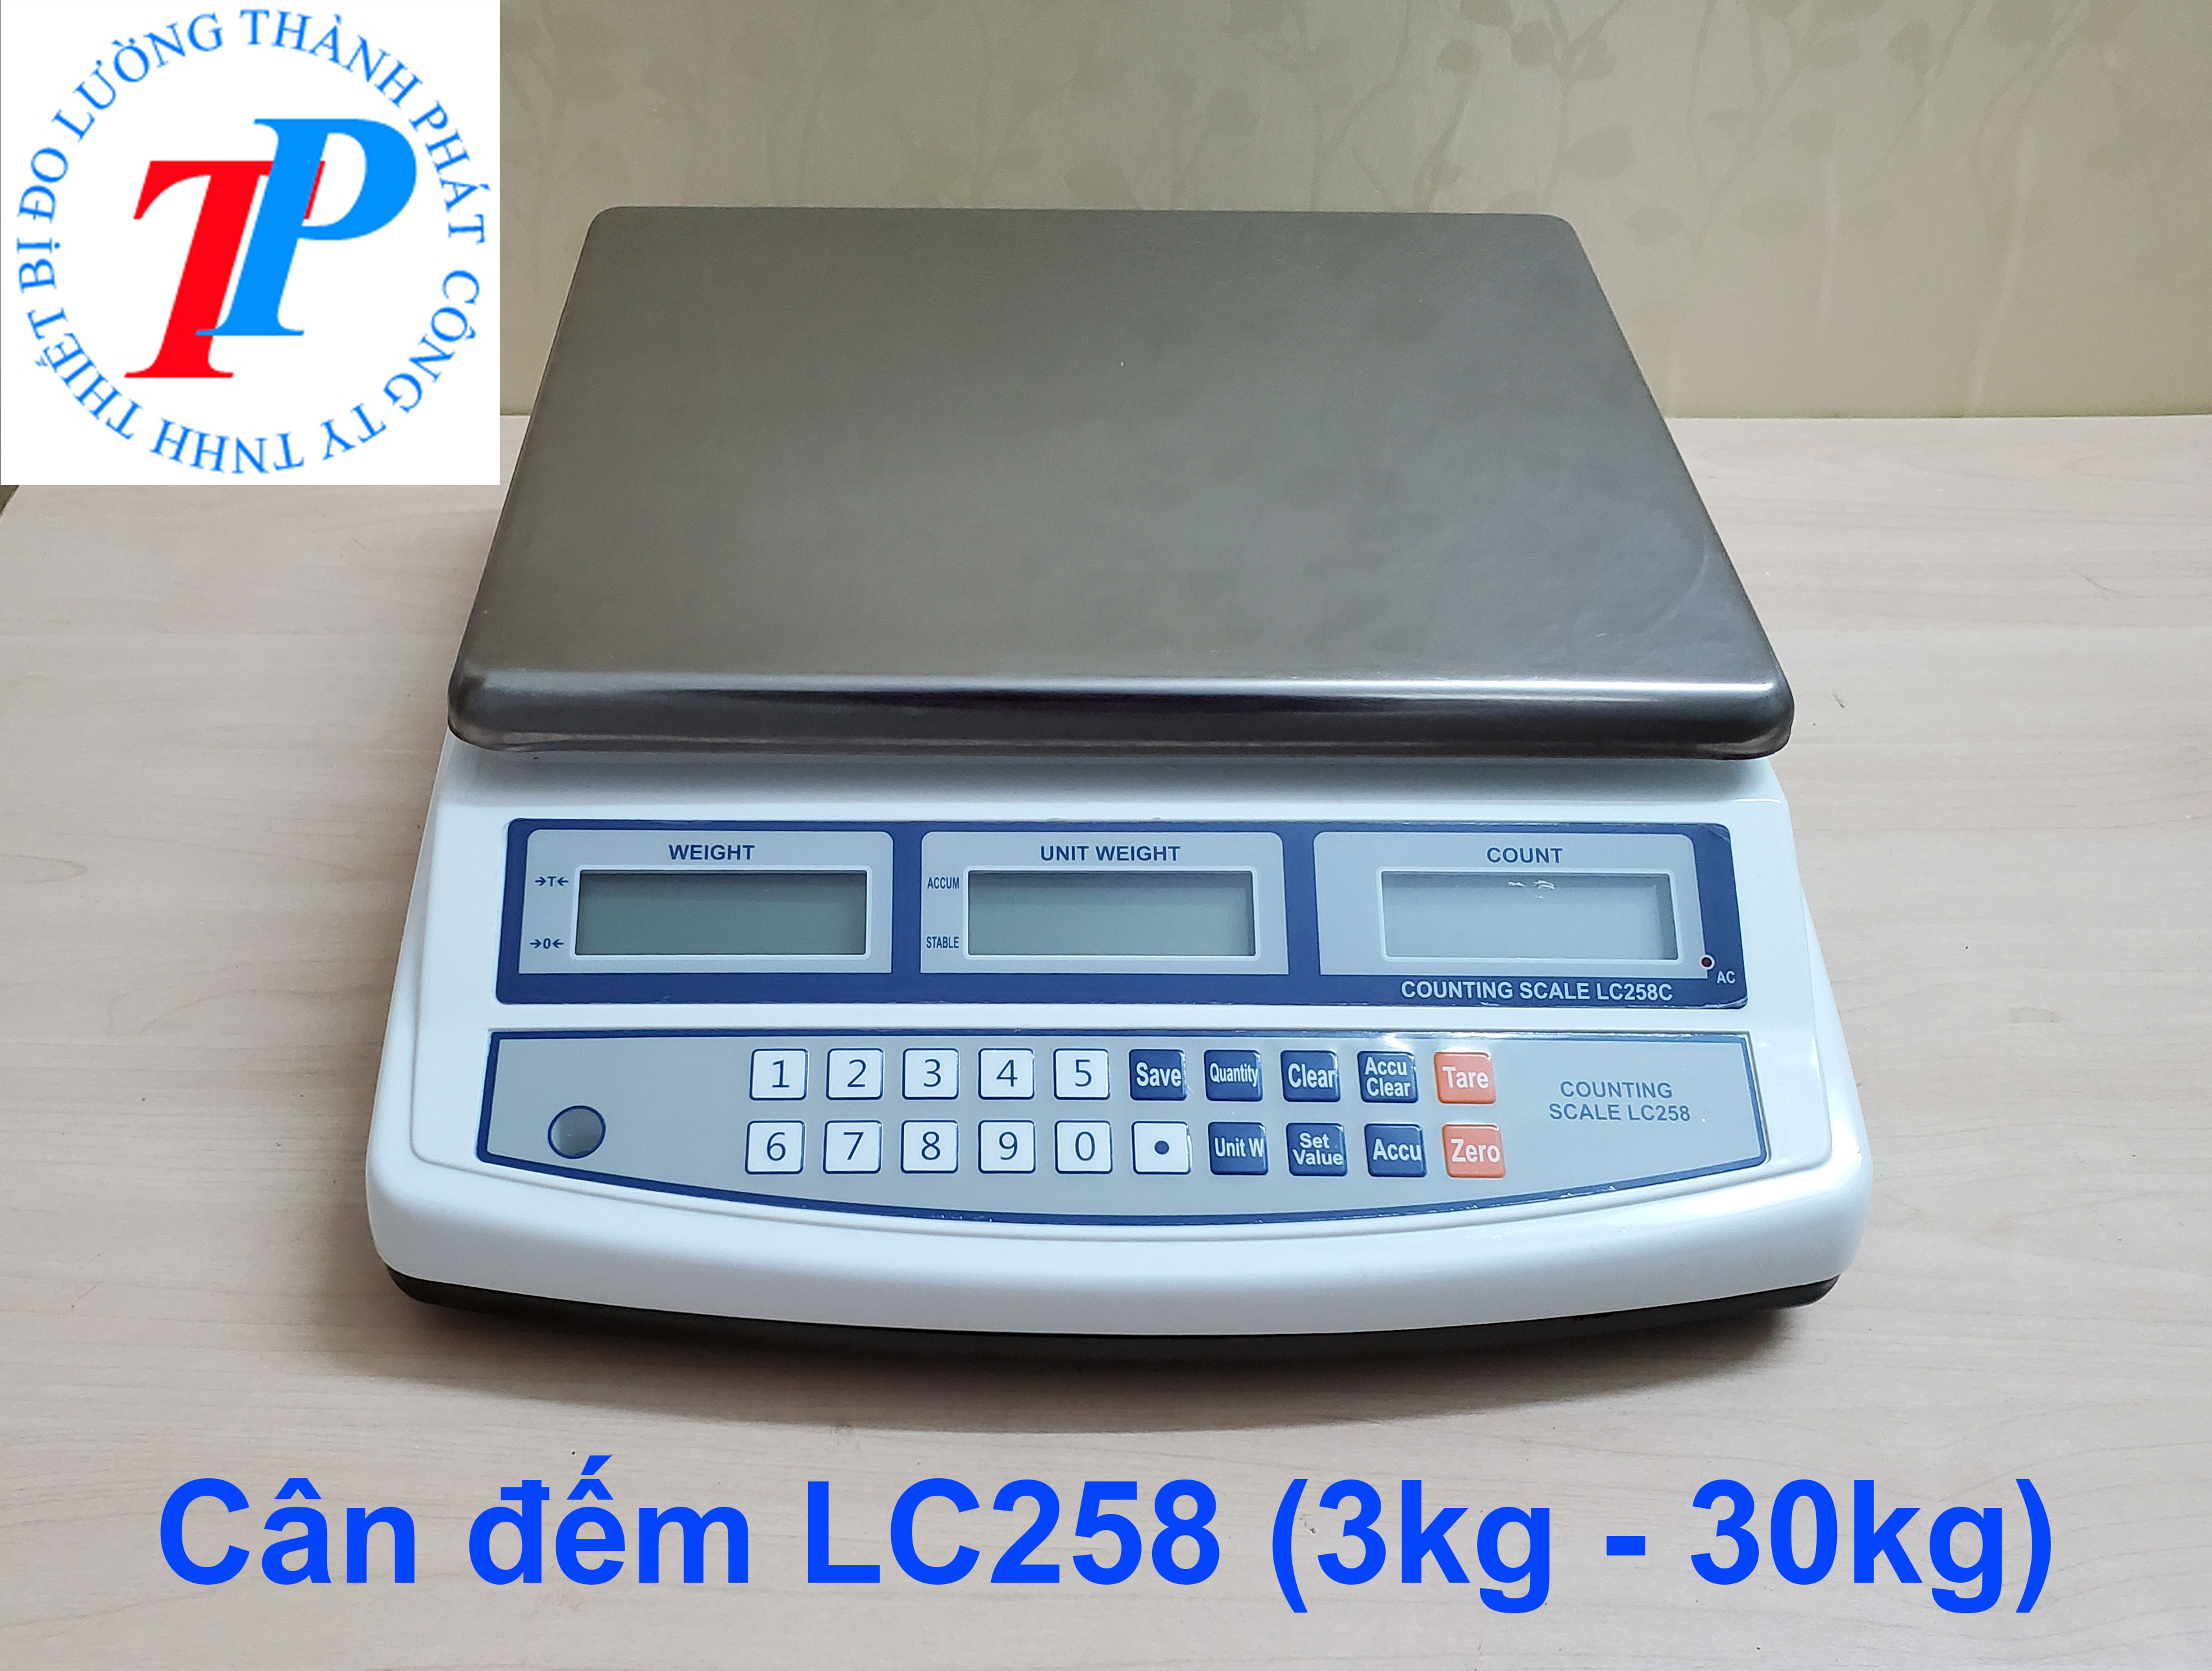 can dem lc258